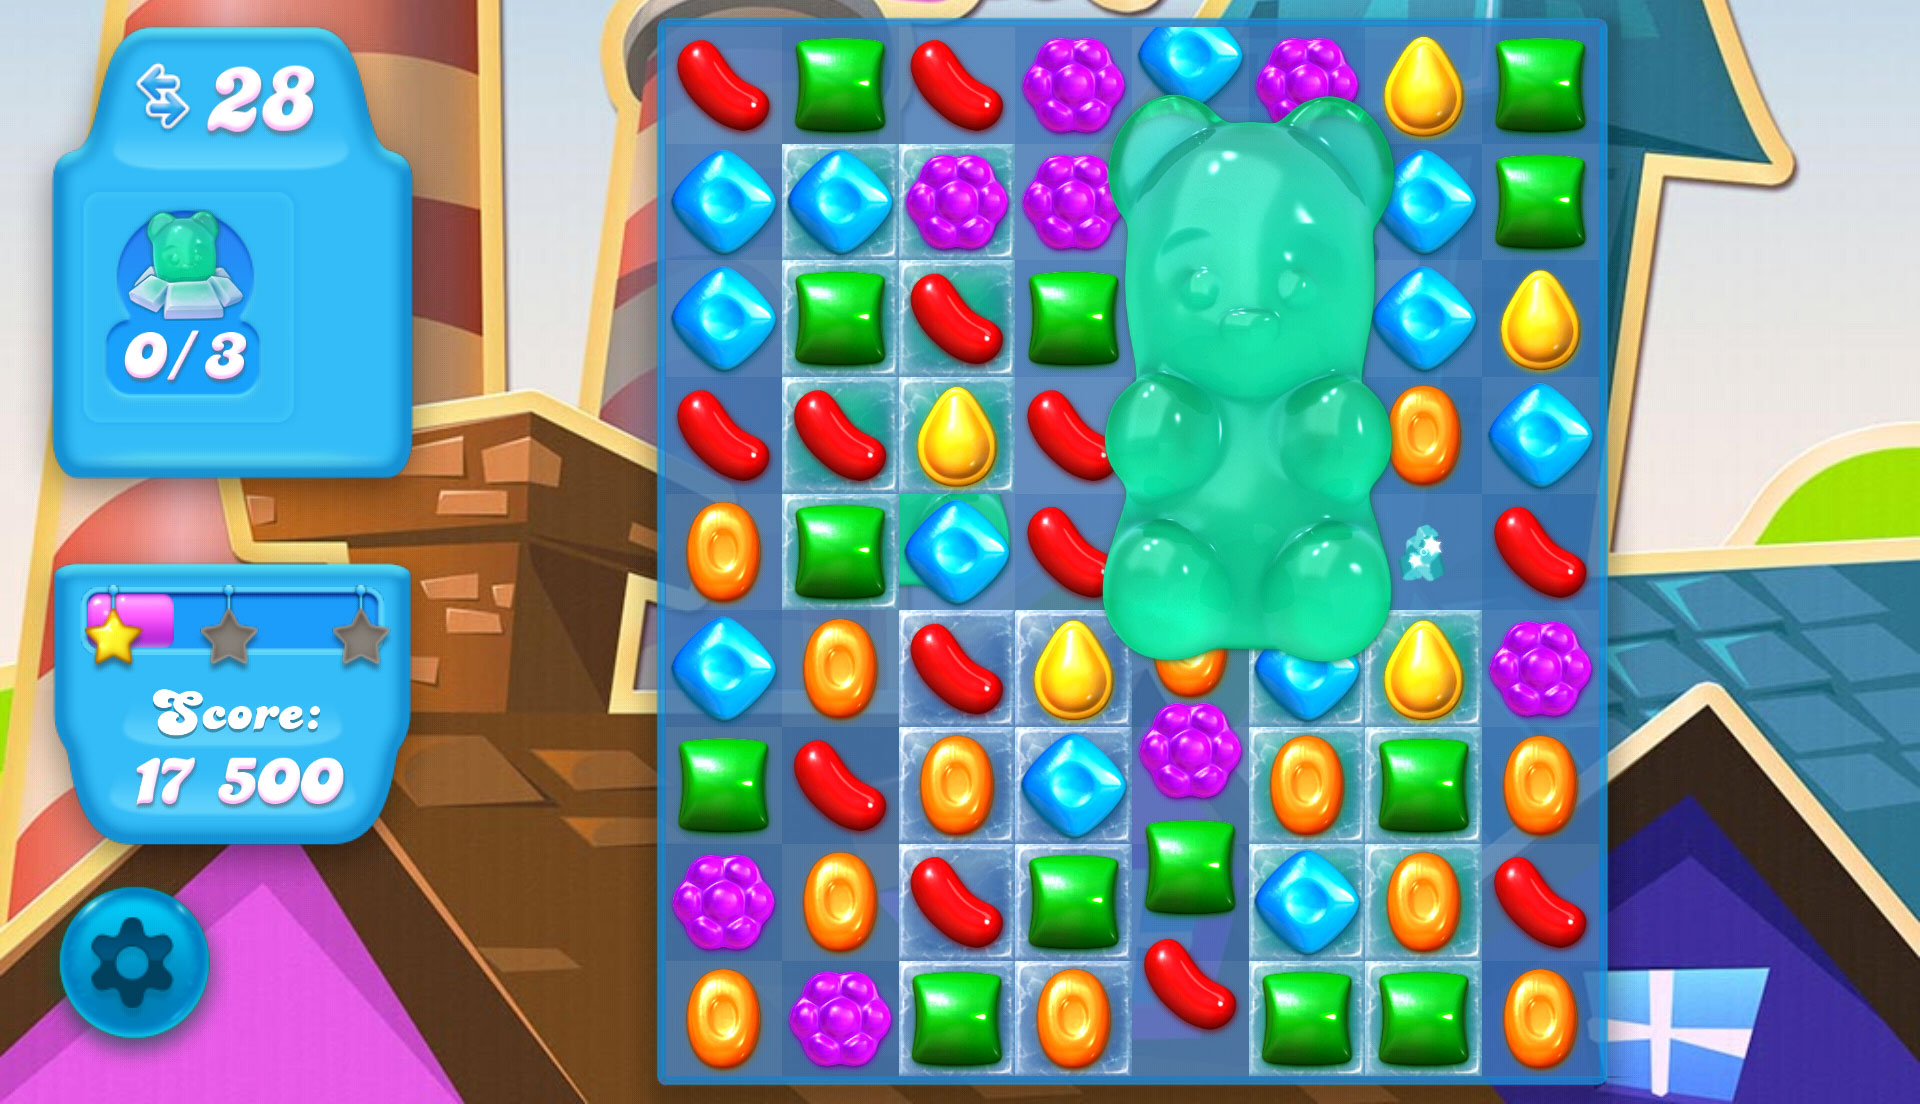 Candy crush saga snoepjes